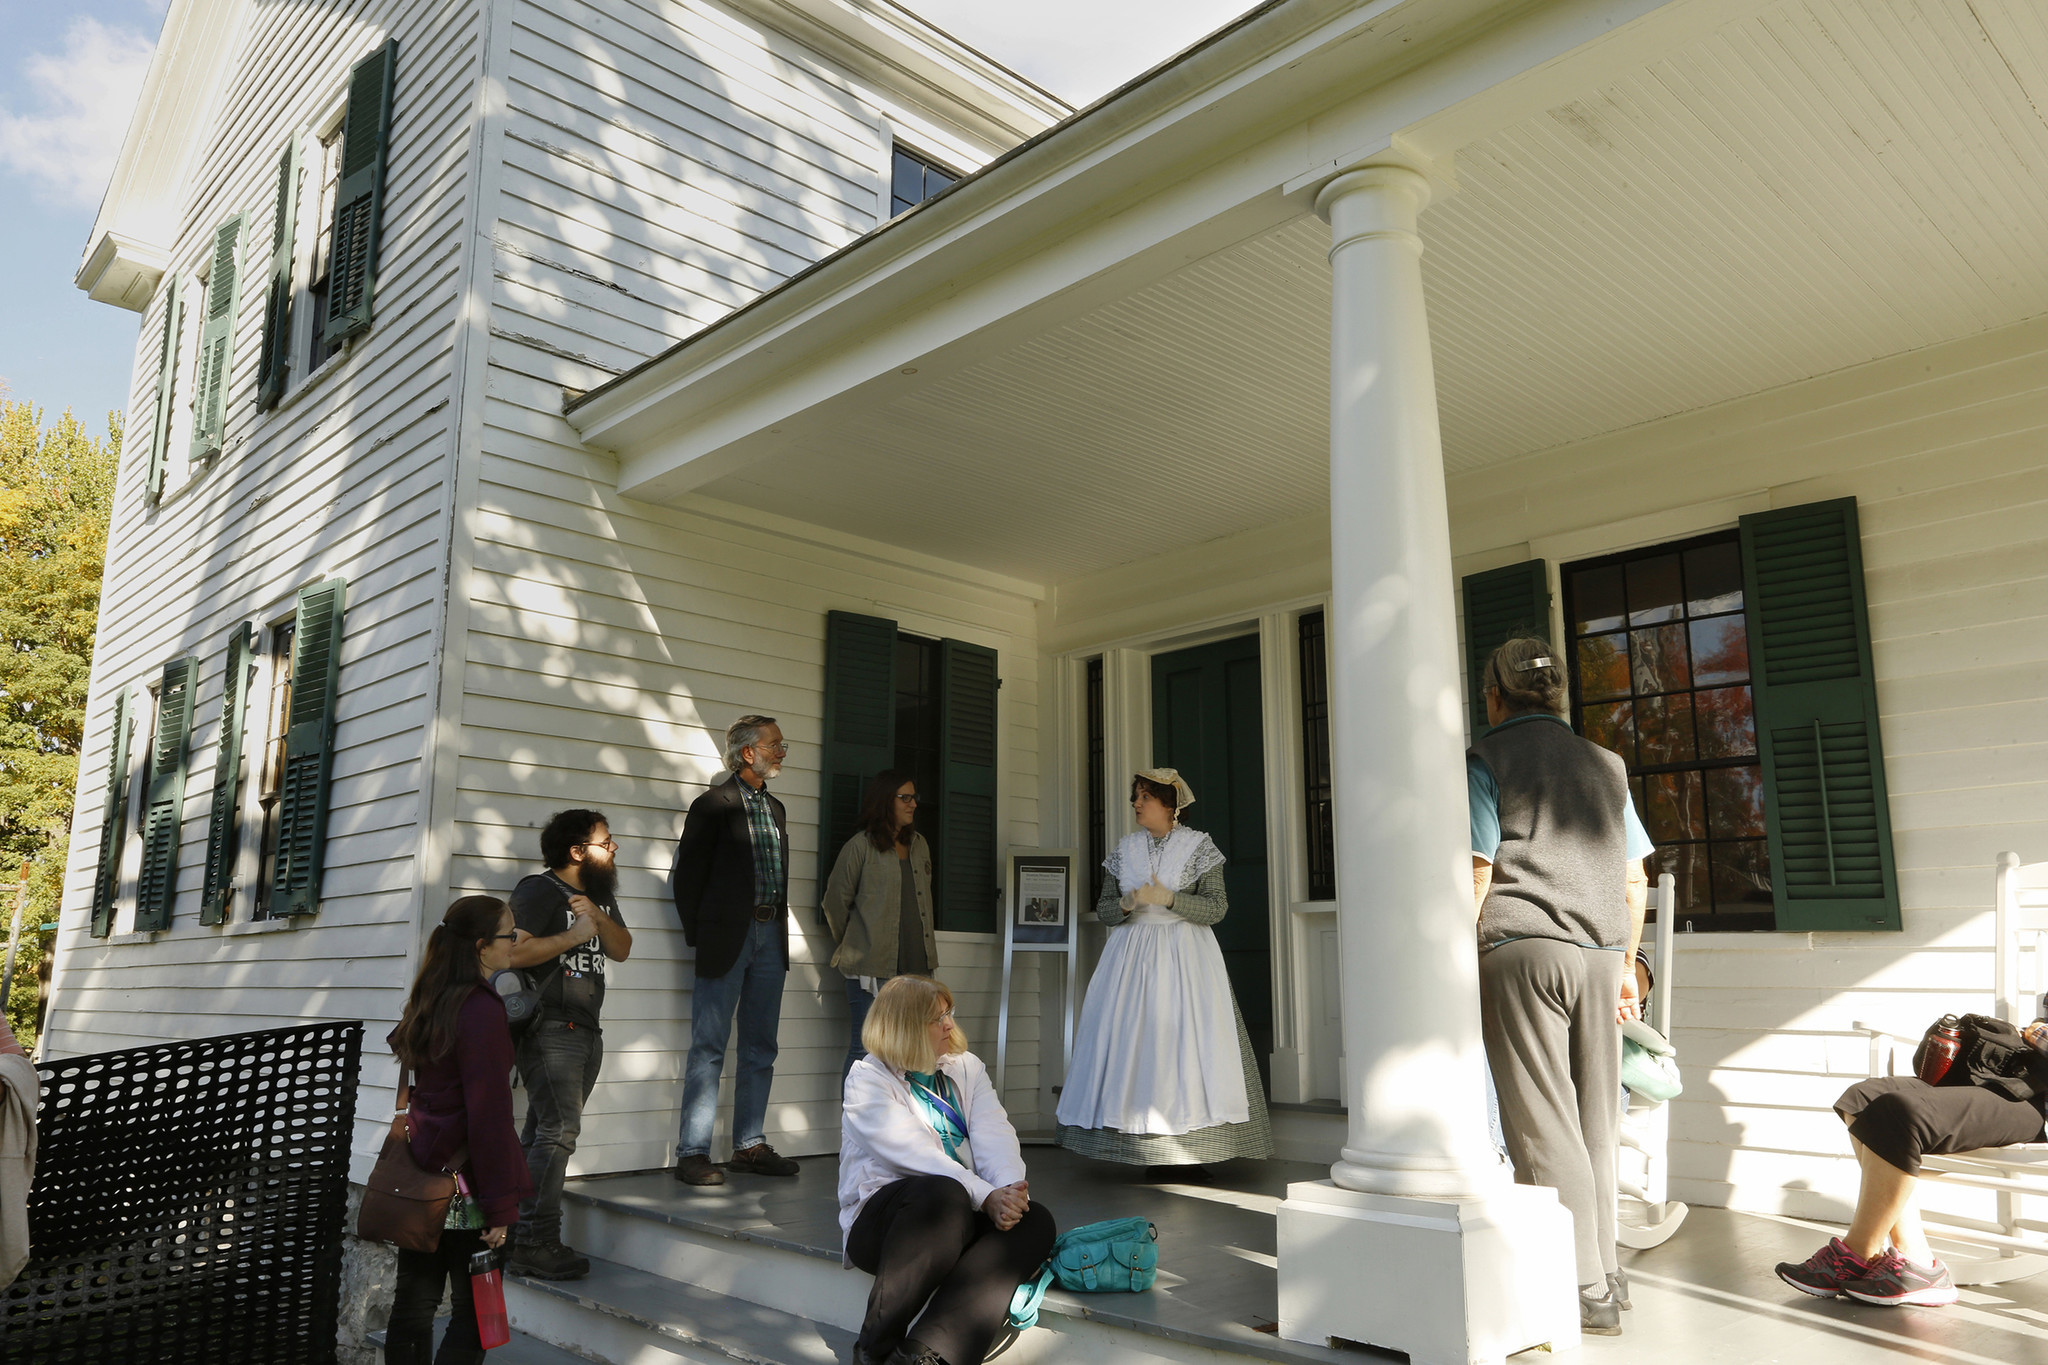 Melinda Grube (in costume) is an historical interpreter, who often appears as Elizabeth Cady Stanton, educating visitors about the role Stanton played in pushing for equal rights for women. Here she speaks to visitors at the park's Elizabeth Cady Stanton Home.